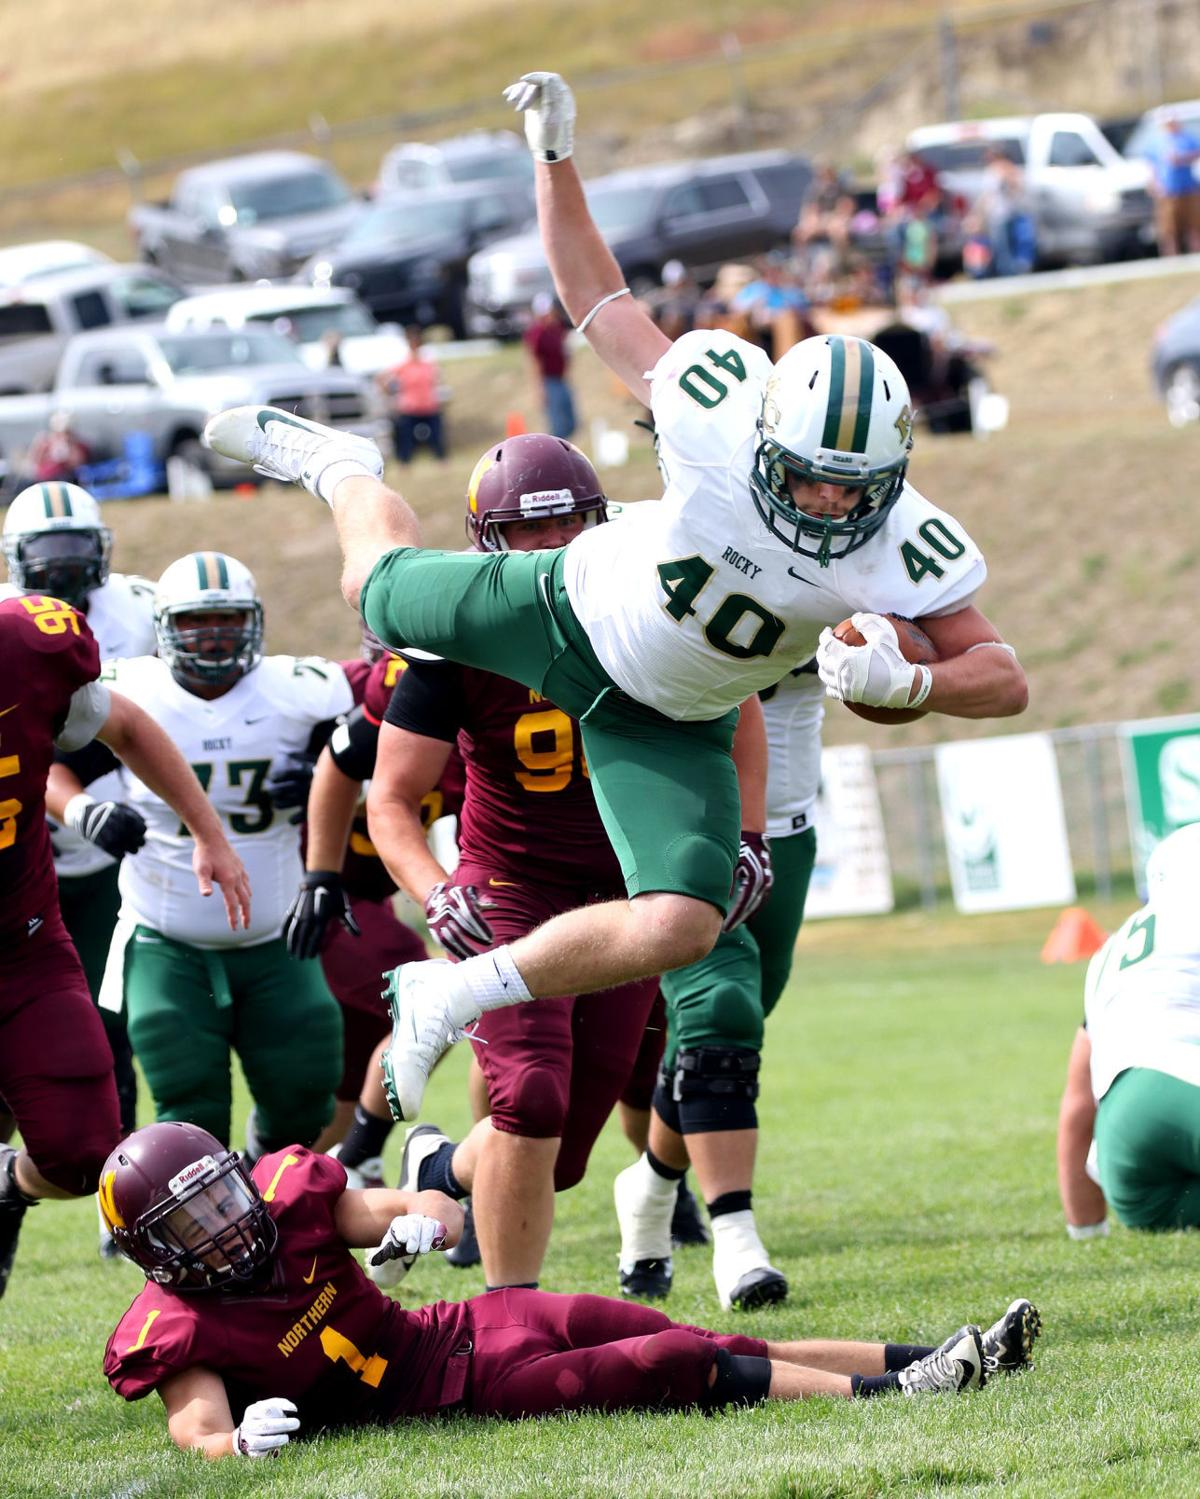 Colorado Mountain College: Rocky Mountain College Opens With Win Over MSU-Northern